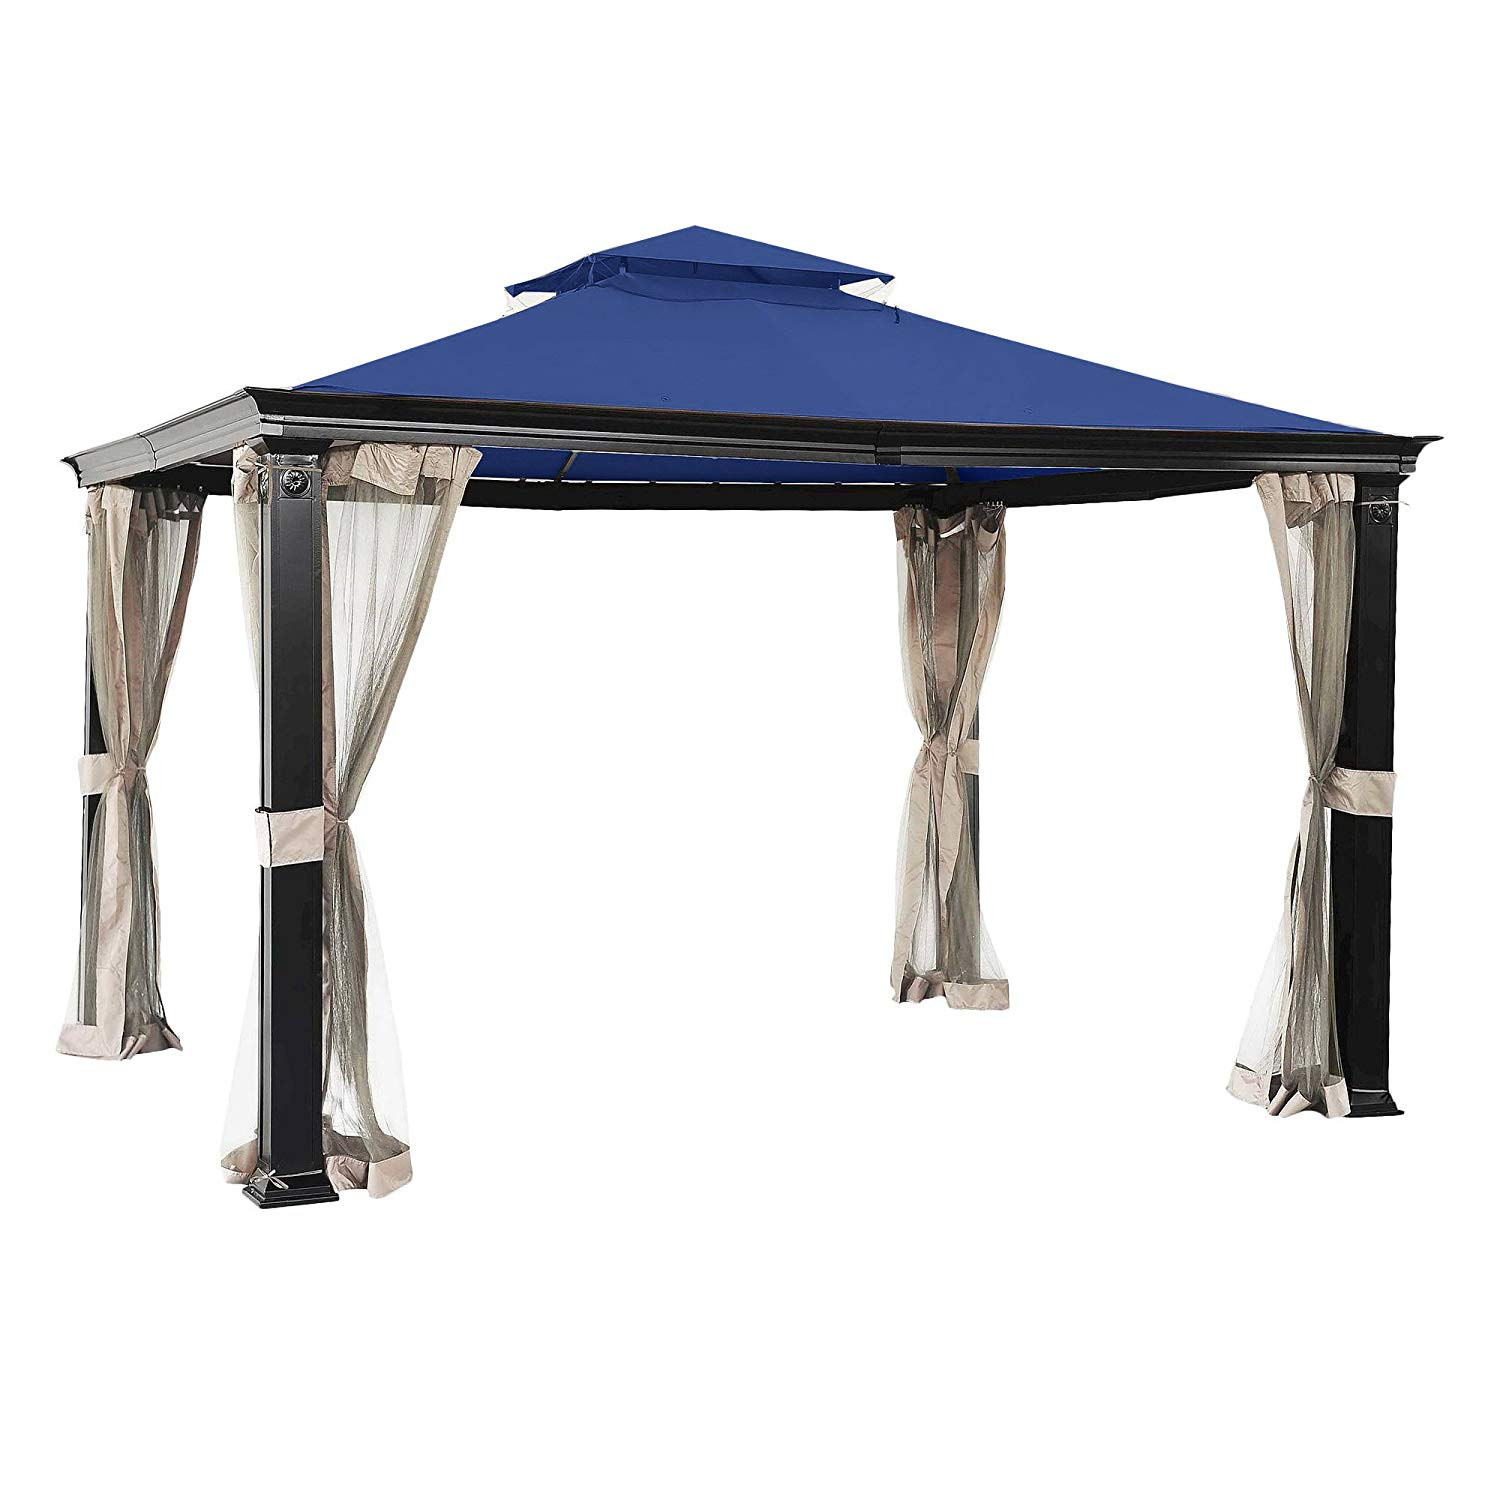 Replacement Canopy Top Cover for Expo Design 10 x 14 Gazebo Patio ...